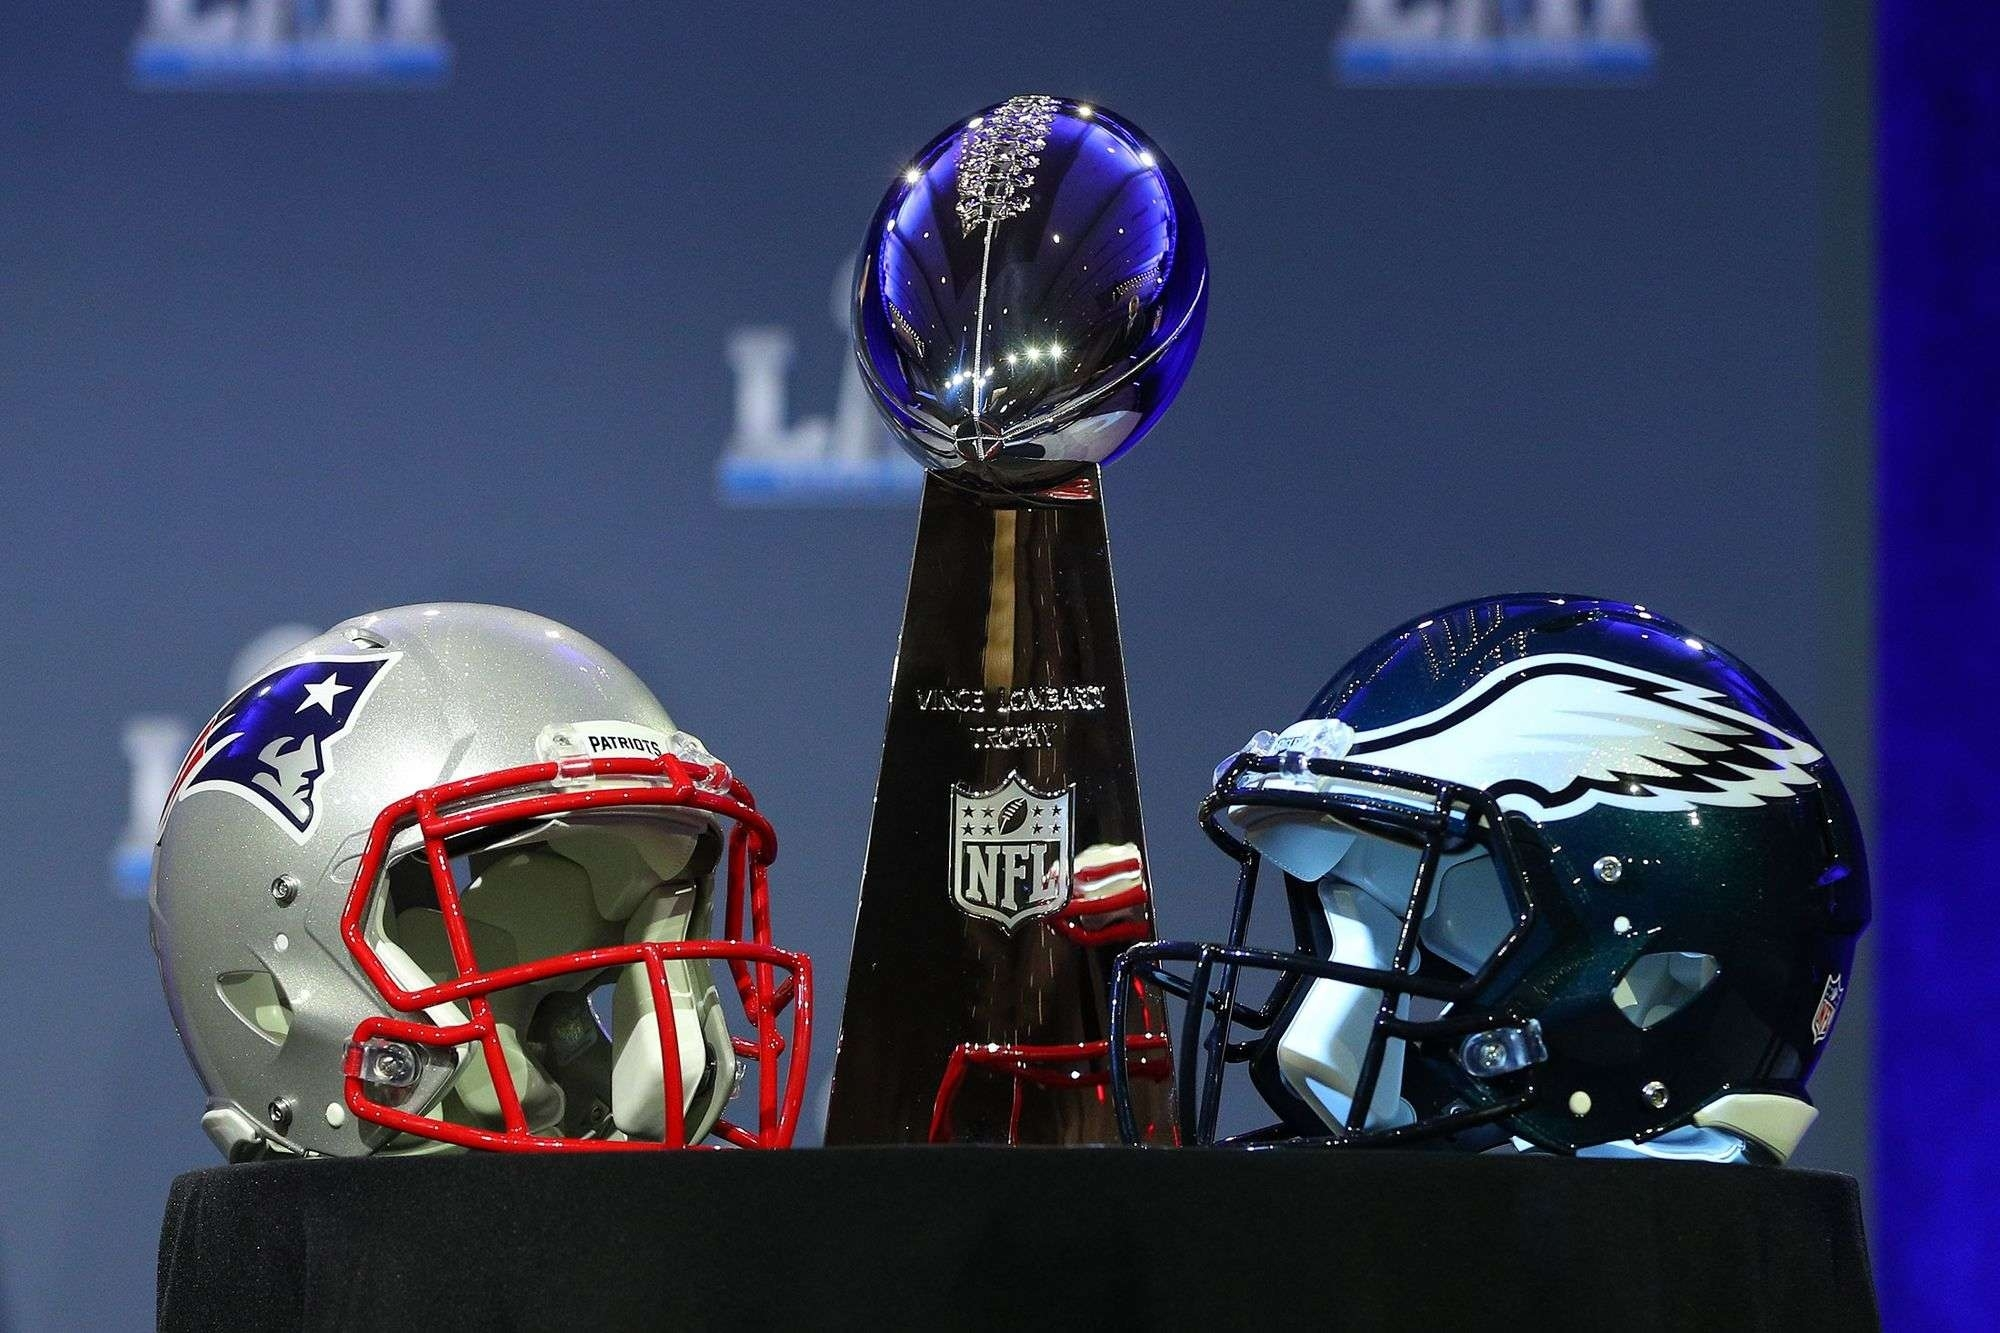 Super Bowl Tickets 2018: Super Bowl Lii Ticket Online: How in Super Bowl Tickets 2018